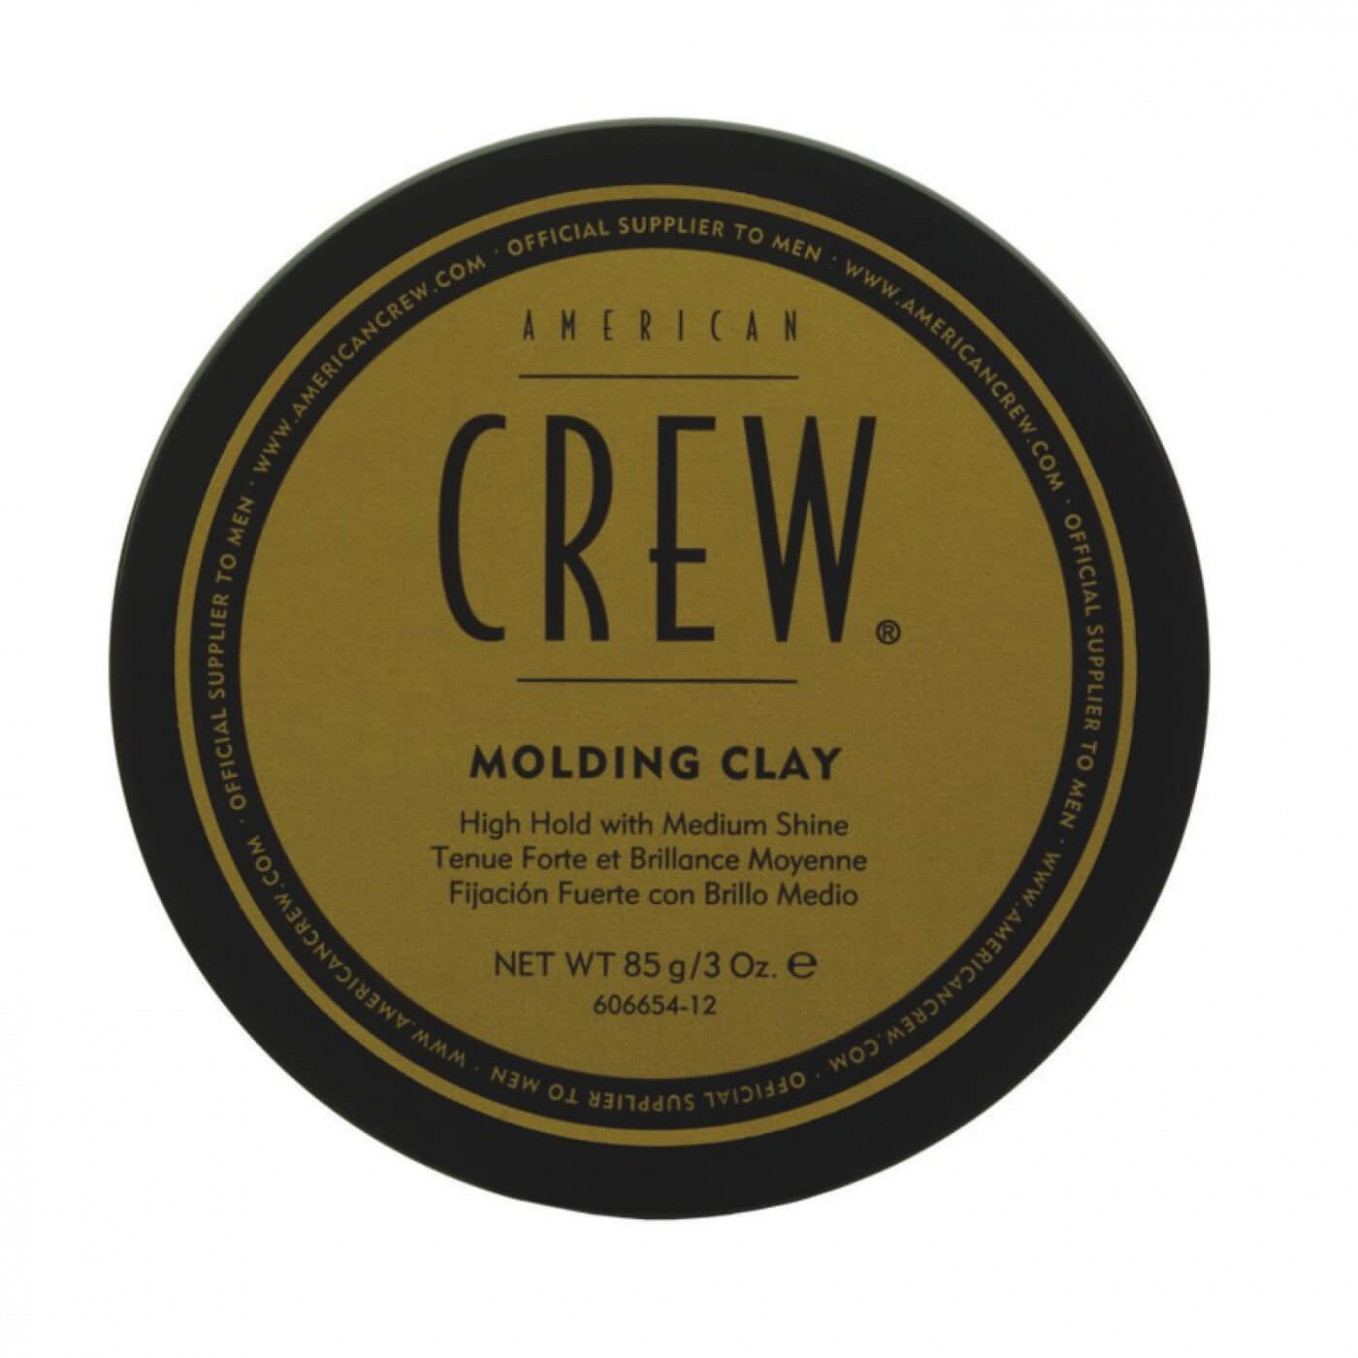 American crew molding clay 10g american crew moulding clay